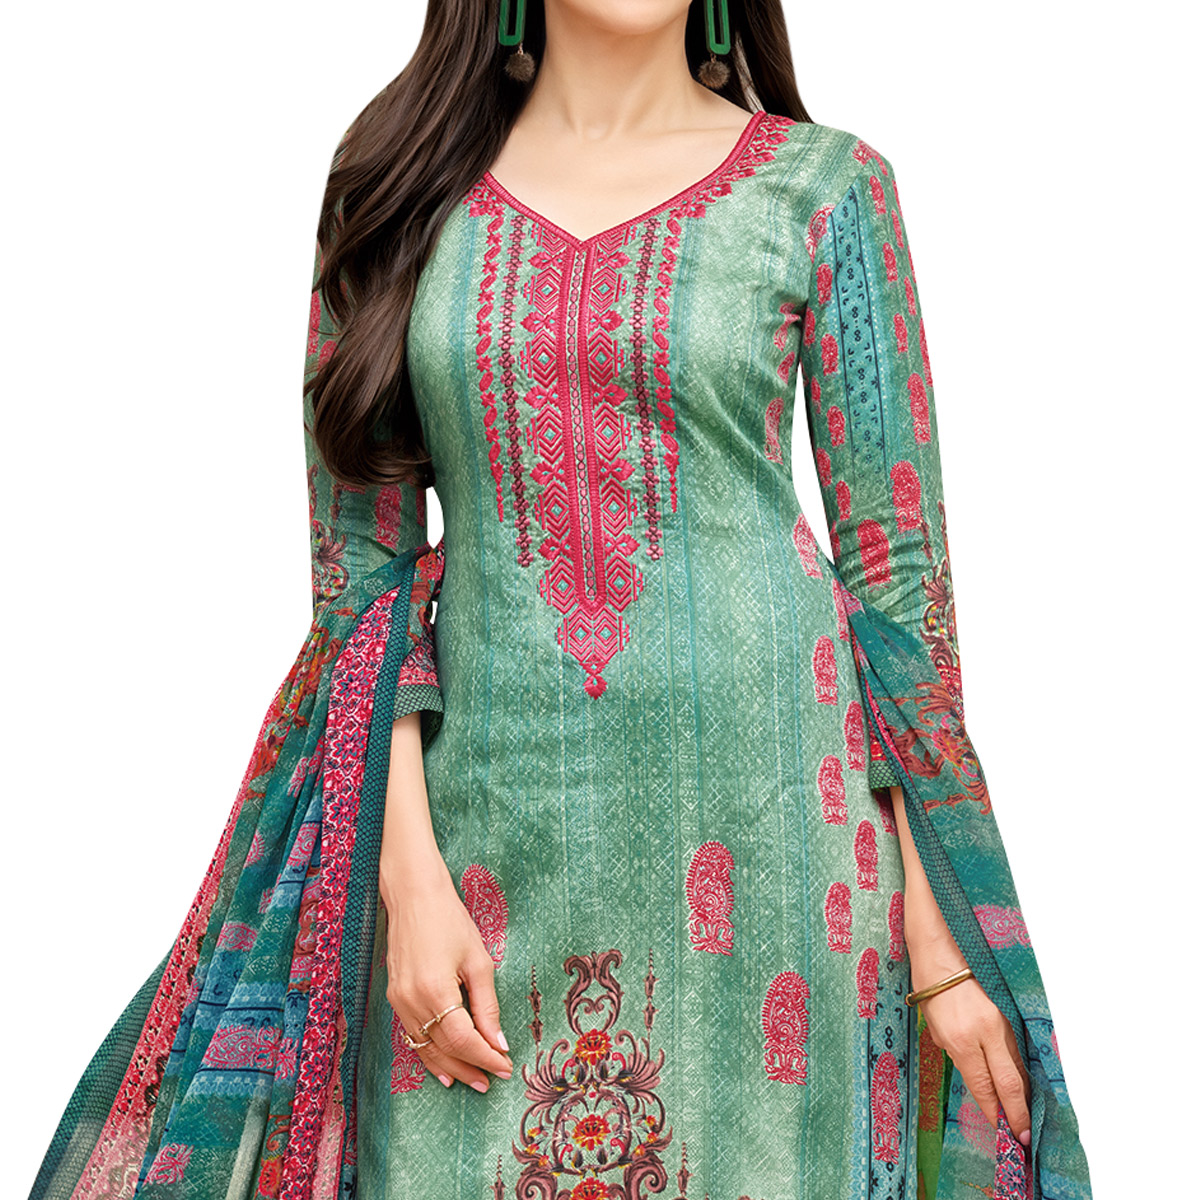 Appealing Green Colored Partywear Embroidered-Printed Satin Dress Material